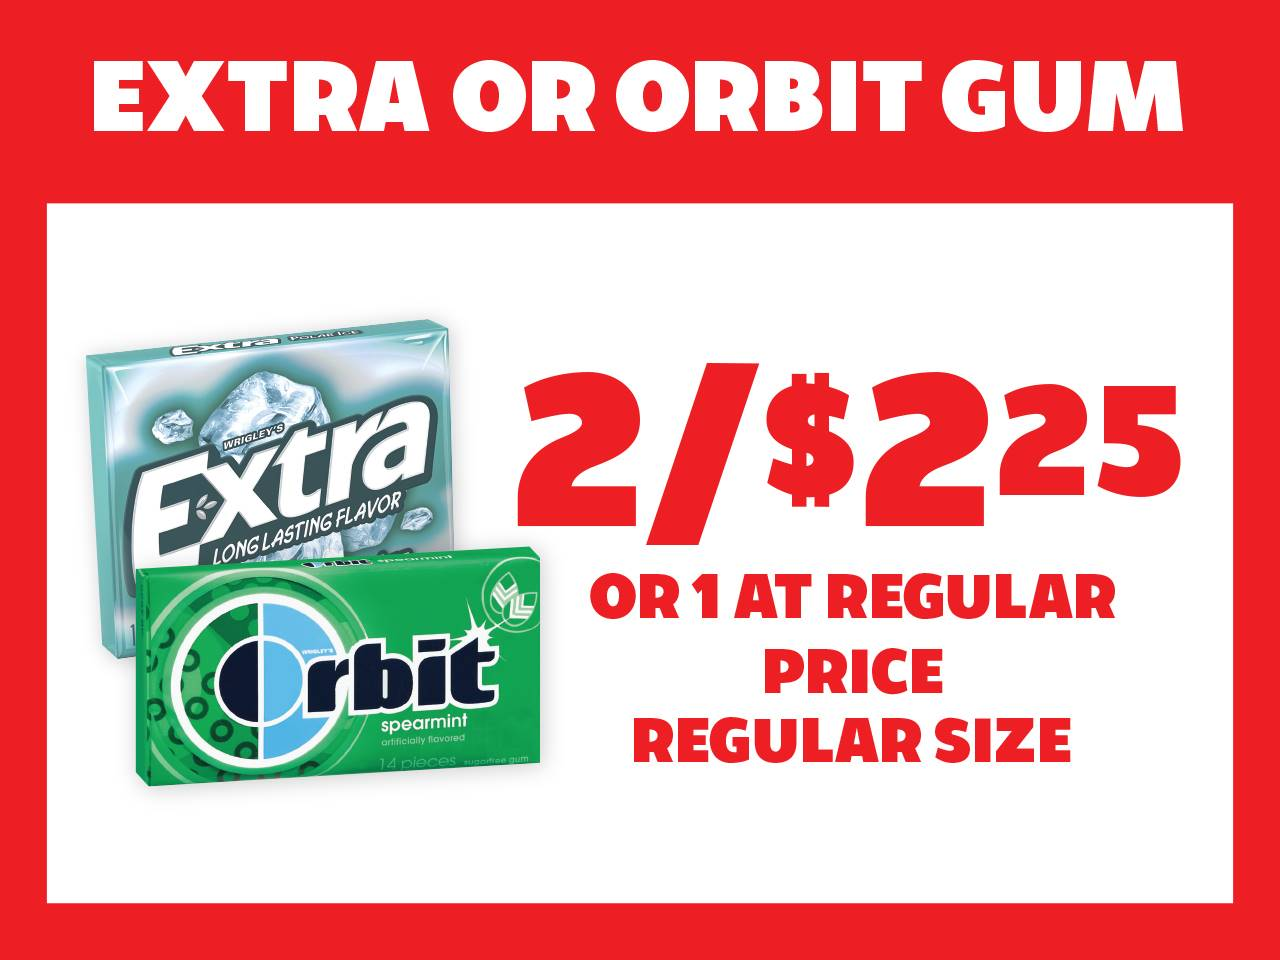 2 Extra or Orbit Gum for $2.25 or 1 at Reg Price